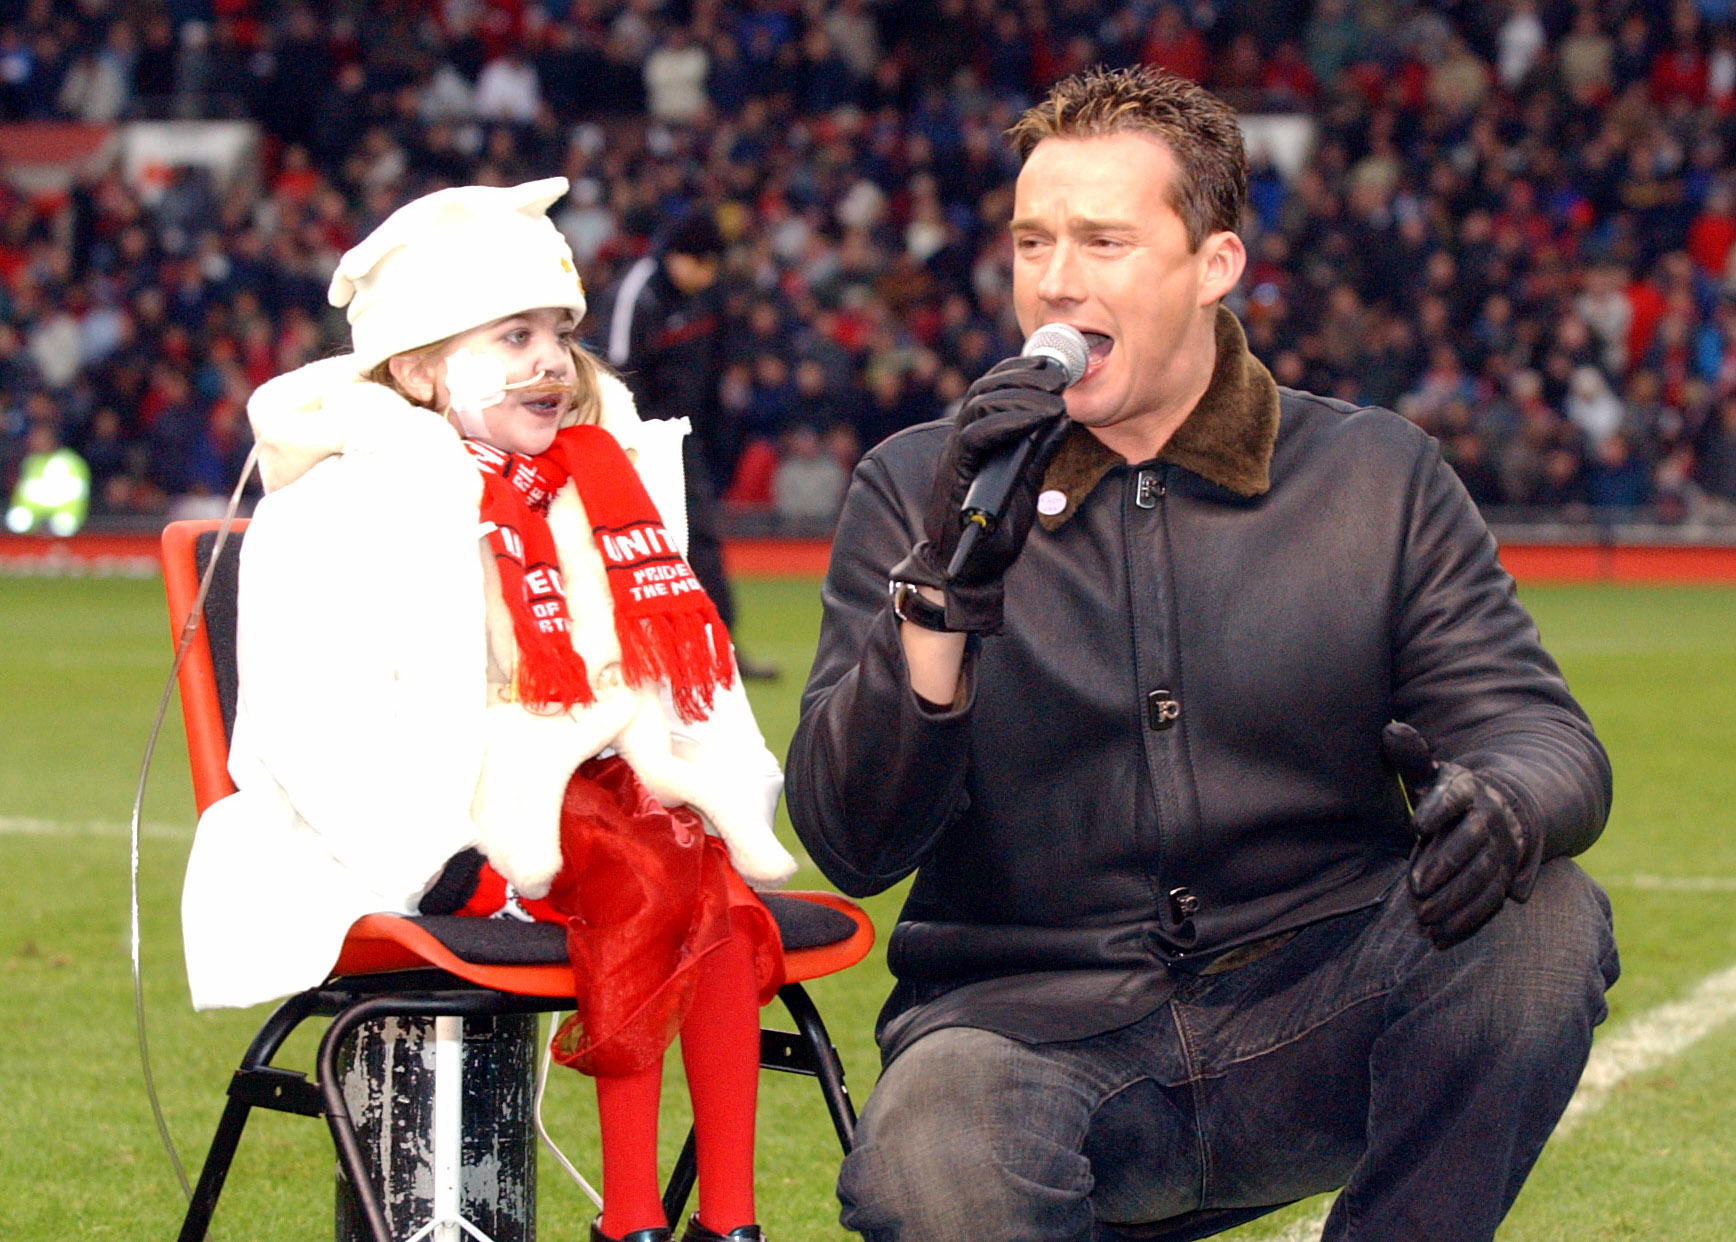 Russell Watson sings to Kirsty Howard and the Man Utd fans at half time, for charity (Matthew Peters/Manchester United via Getty Images)